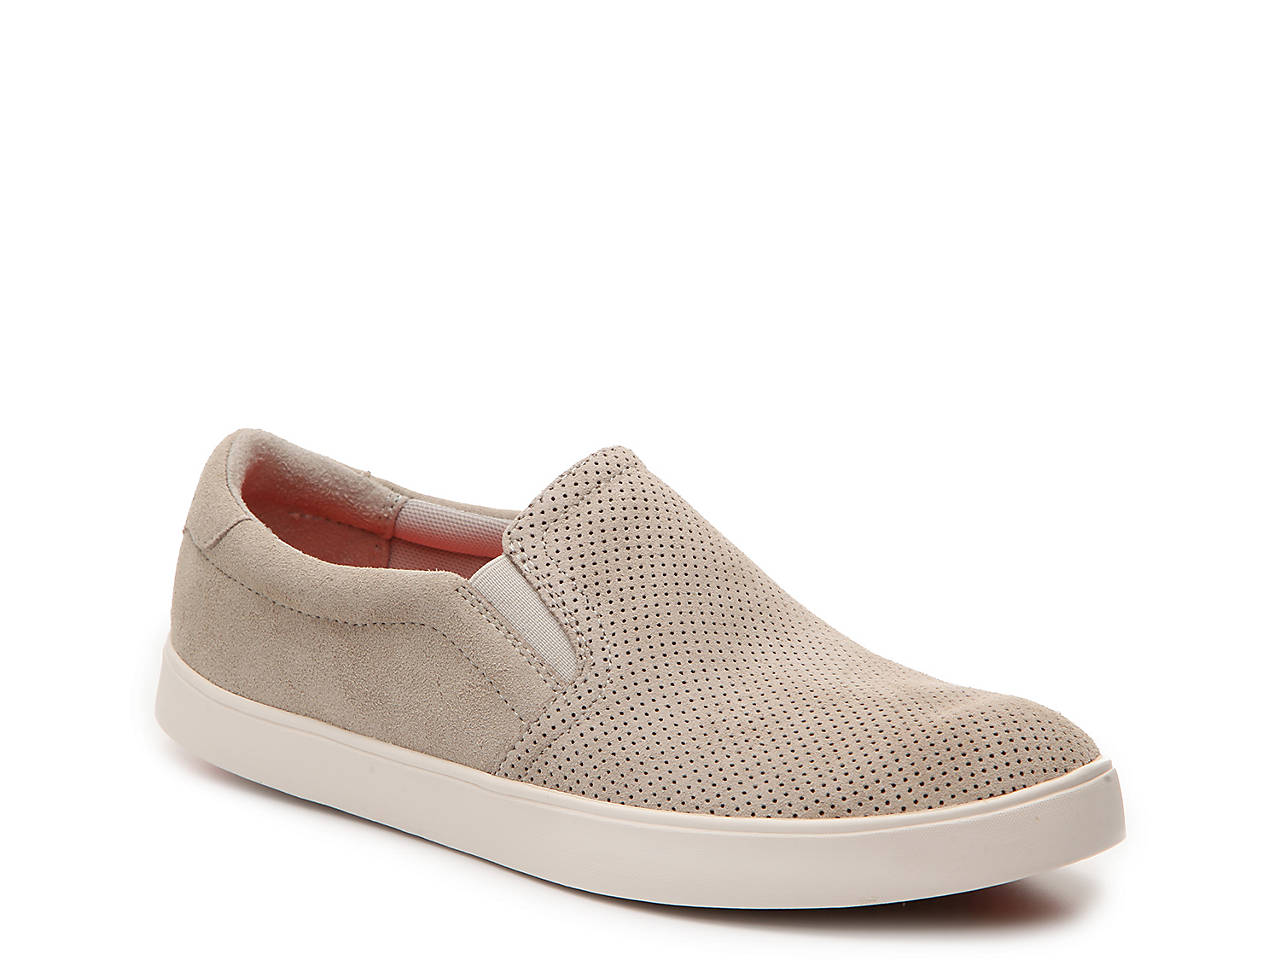 bec1528a6d69 Dr. Scholl s Madison Slip-On Sneaker Women s Shoes